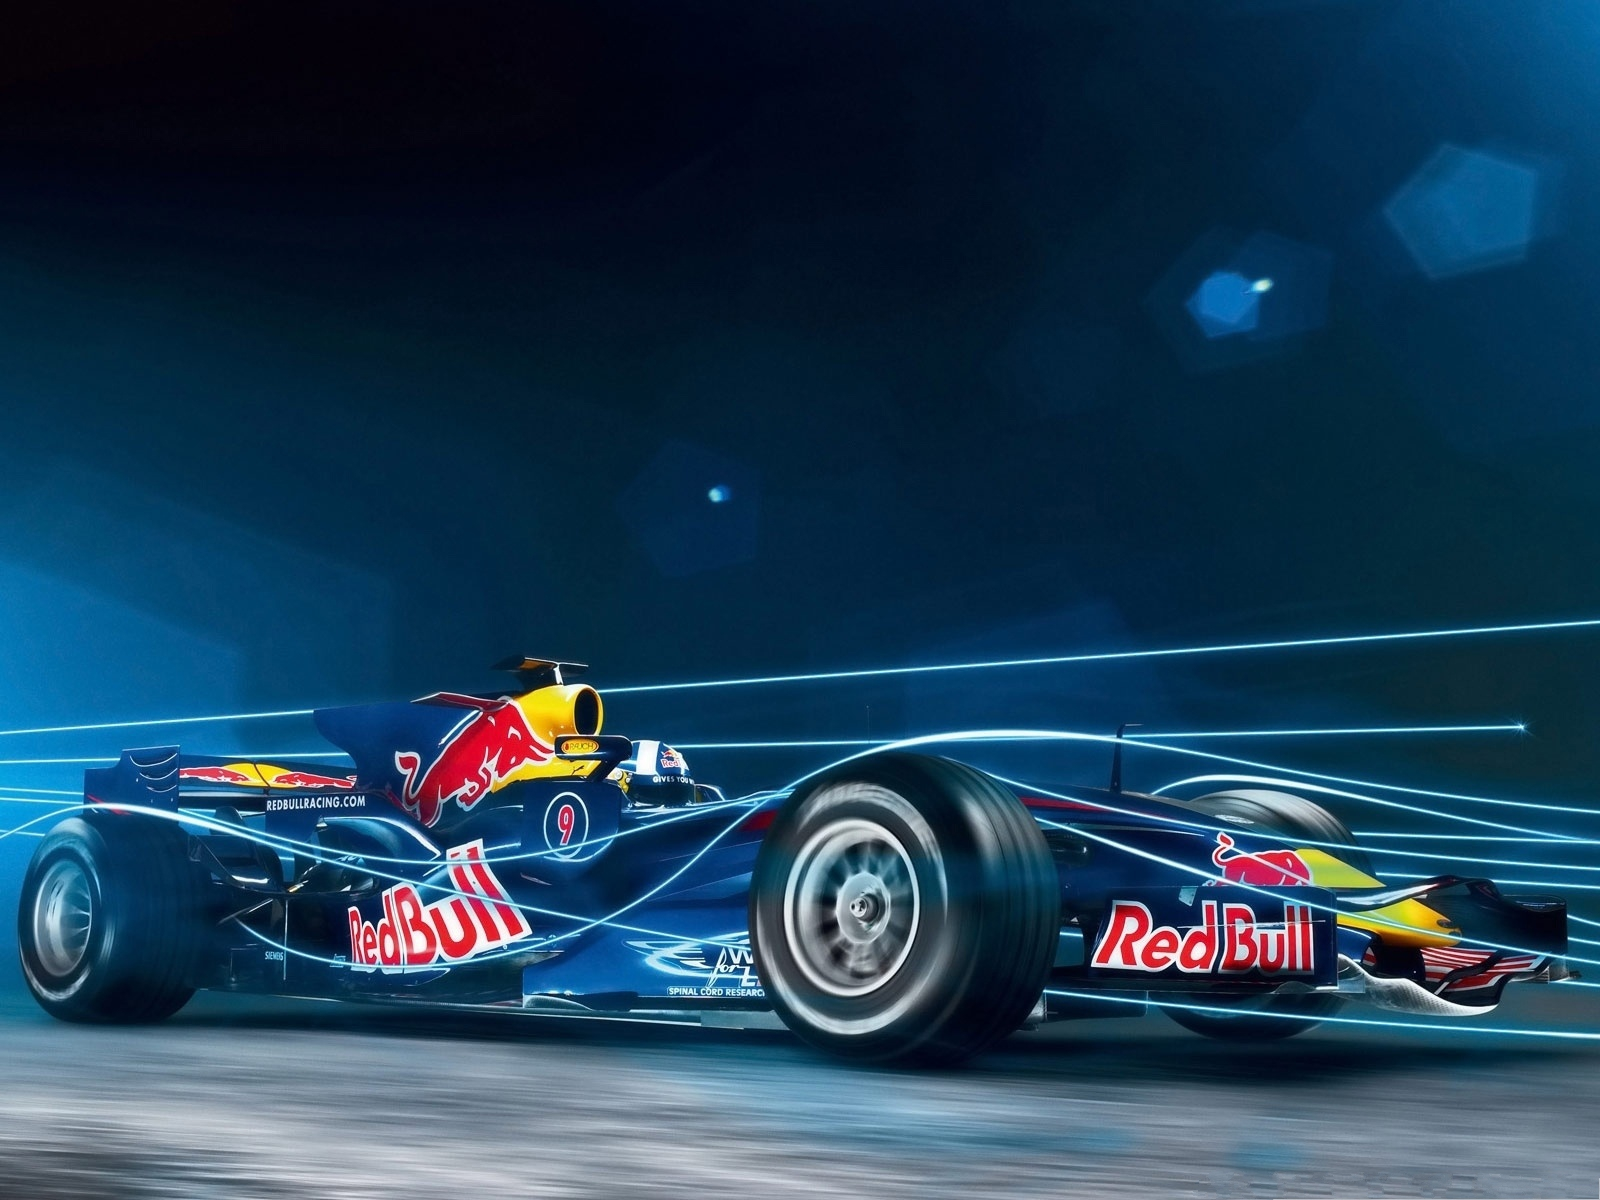 click to free download the wallpaper--Nice Cars Wallpaper, Red Bull Formula, Straight Blue Lines, Amazing Look 1600X1200 free wallpaper download